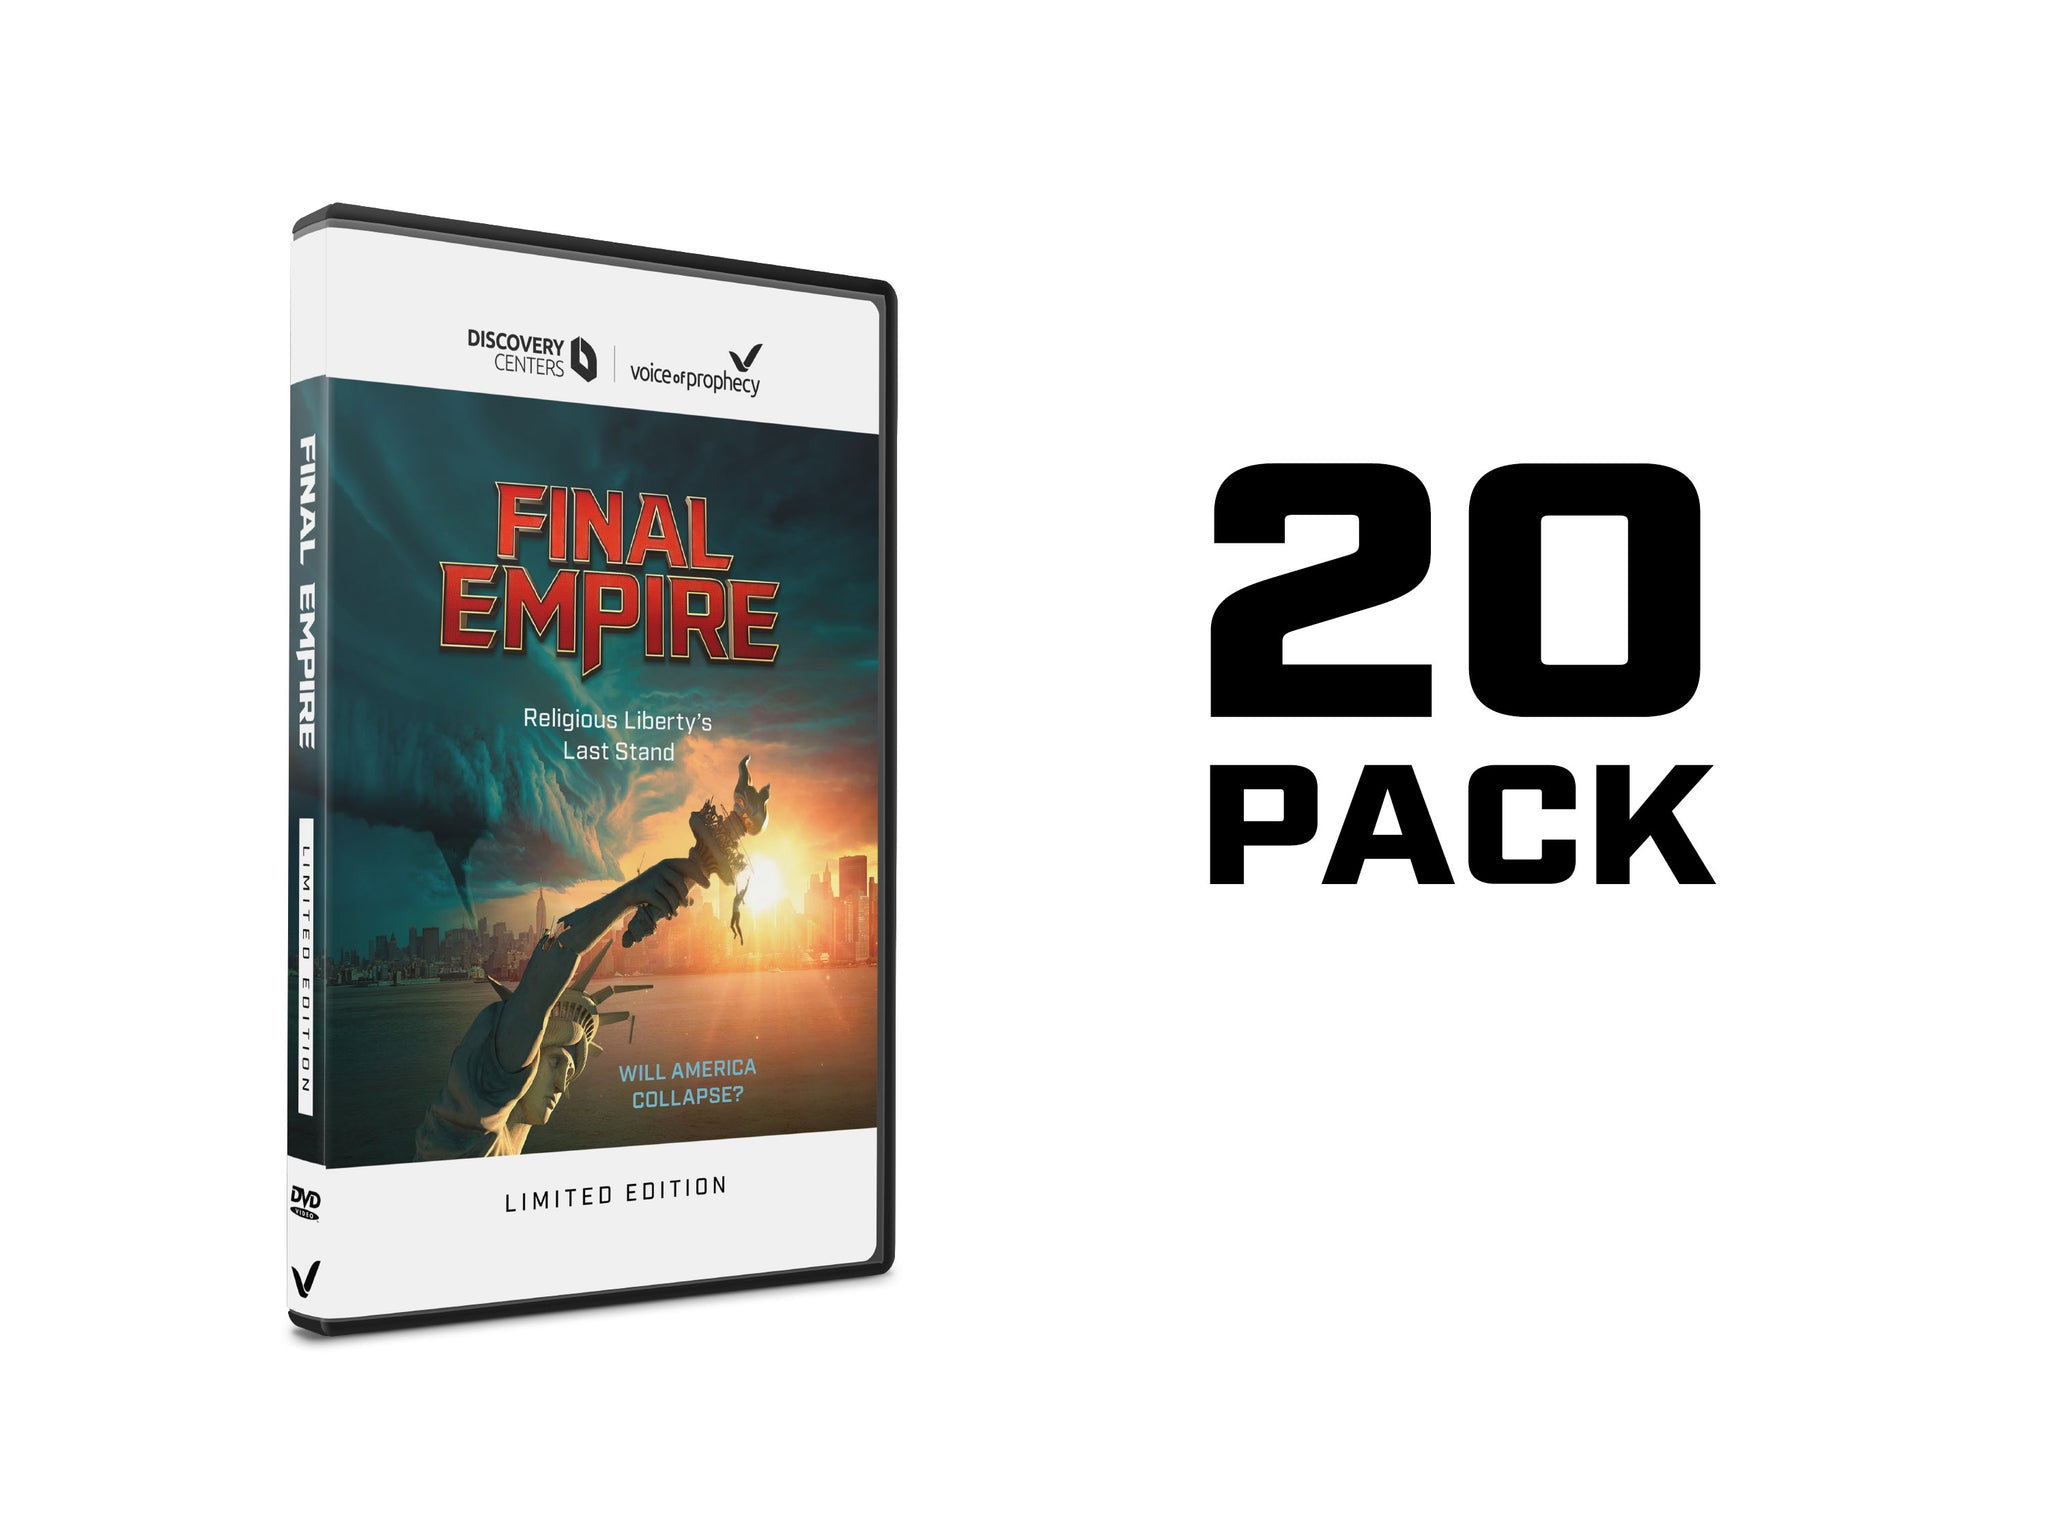 Final Empire DVD (20 Pack)